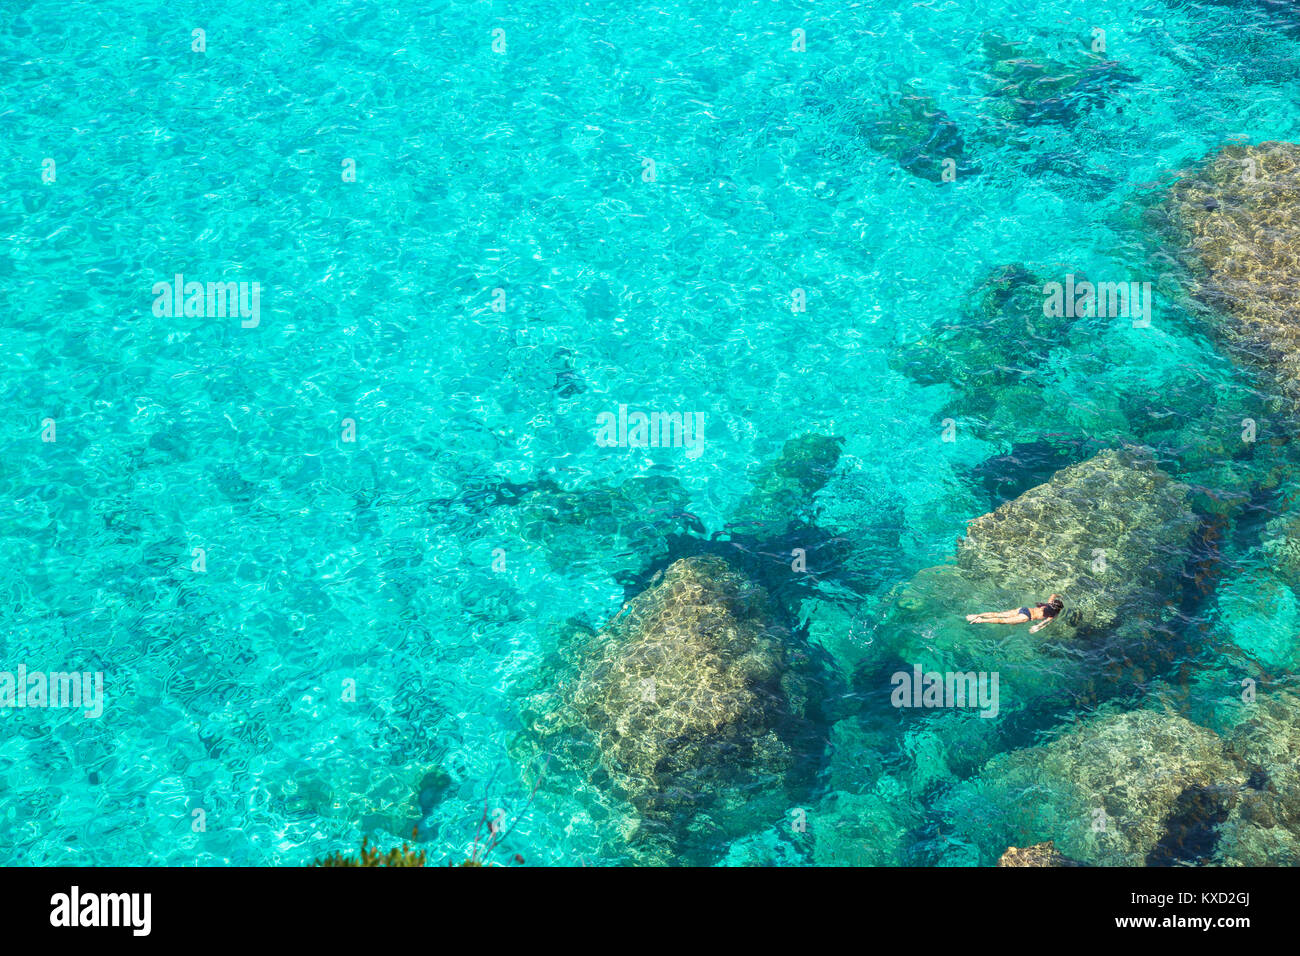 Person swimming in the emerald waters of Cala Mitjana, Menorca, Balearic Islands,  Spain, Europe - Stock Image